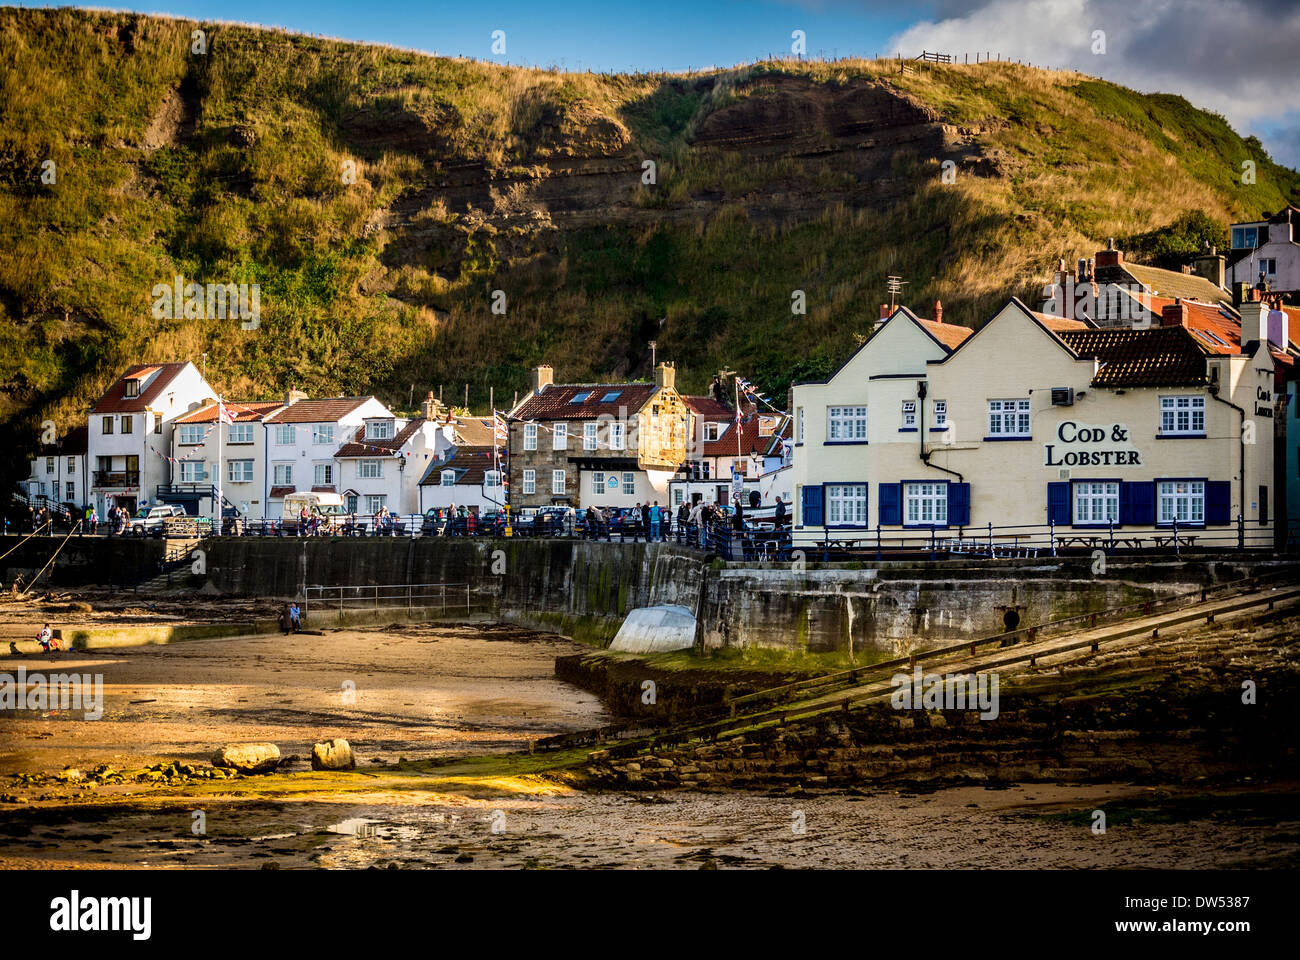 Harbour at Staithes, North Yorkshire, UK. - Stock Image